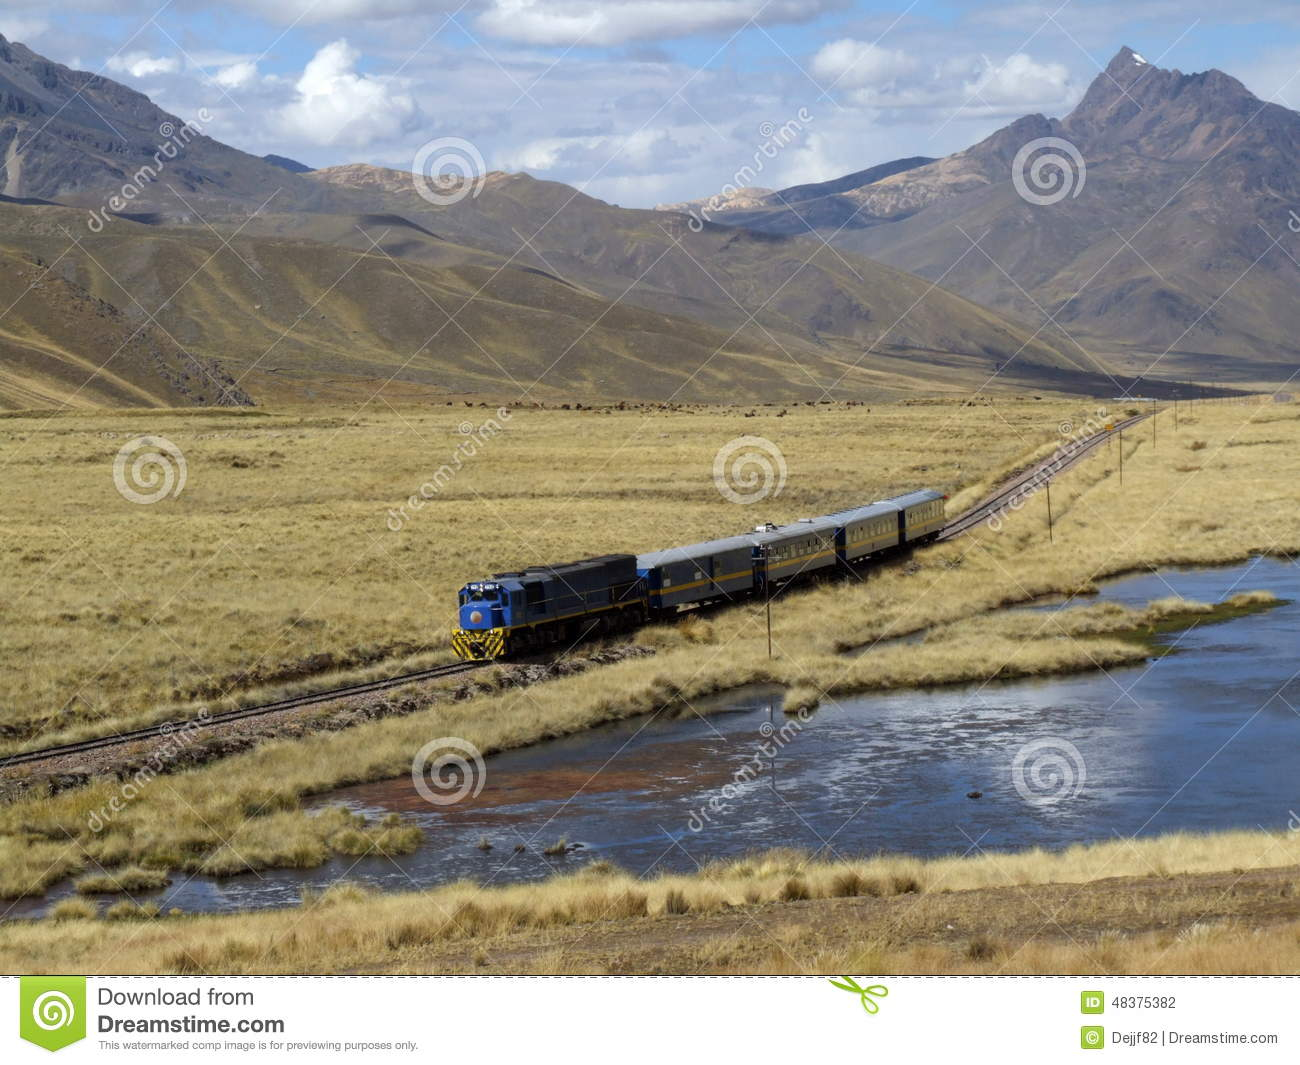 Train Goes Through Altiplano, Puno Region, Peru Stock Photo.